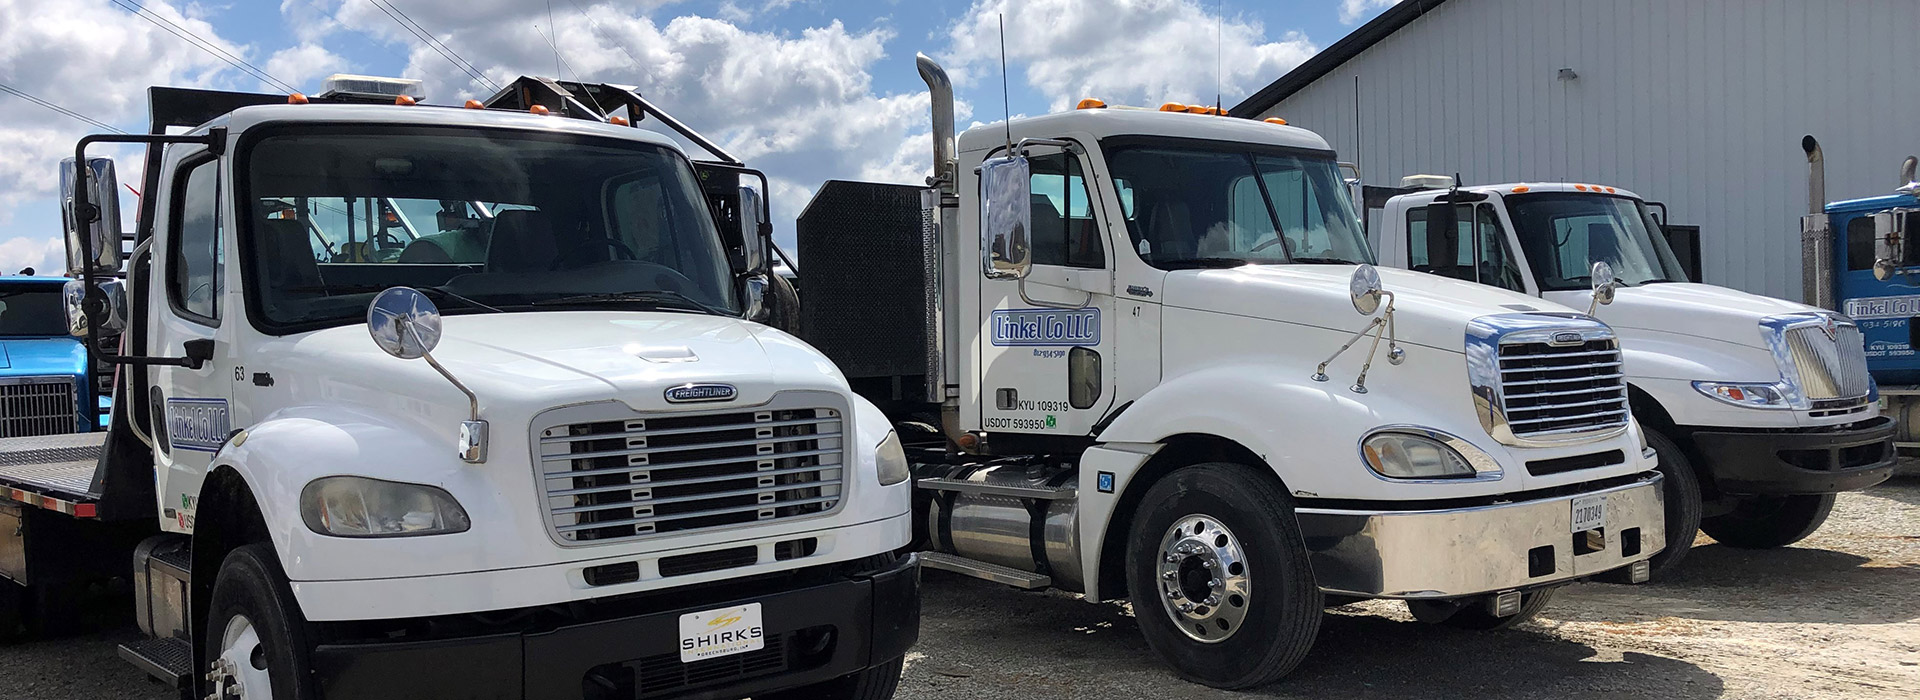 Linkel Company trucks